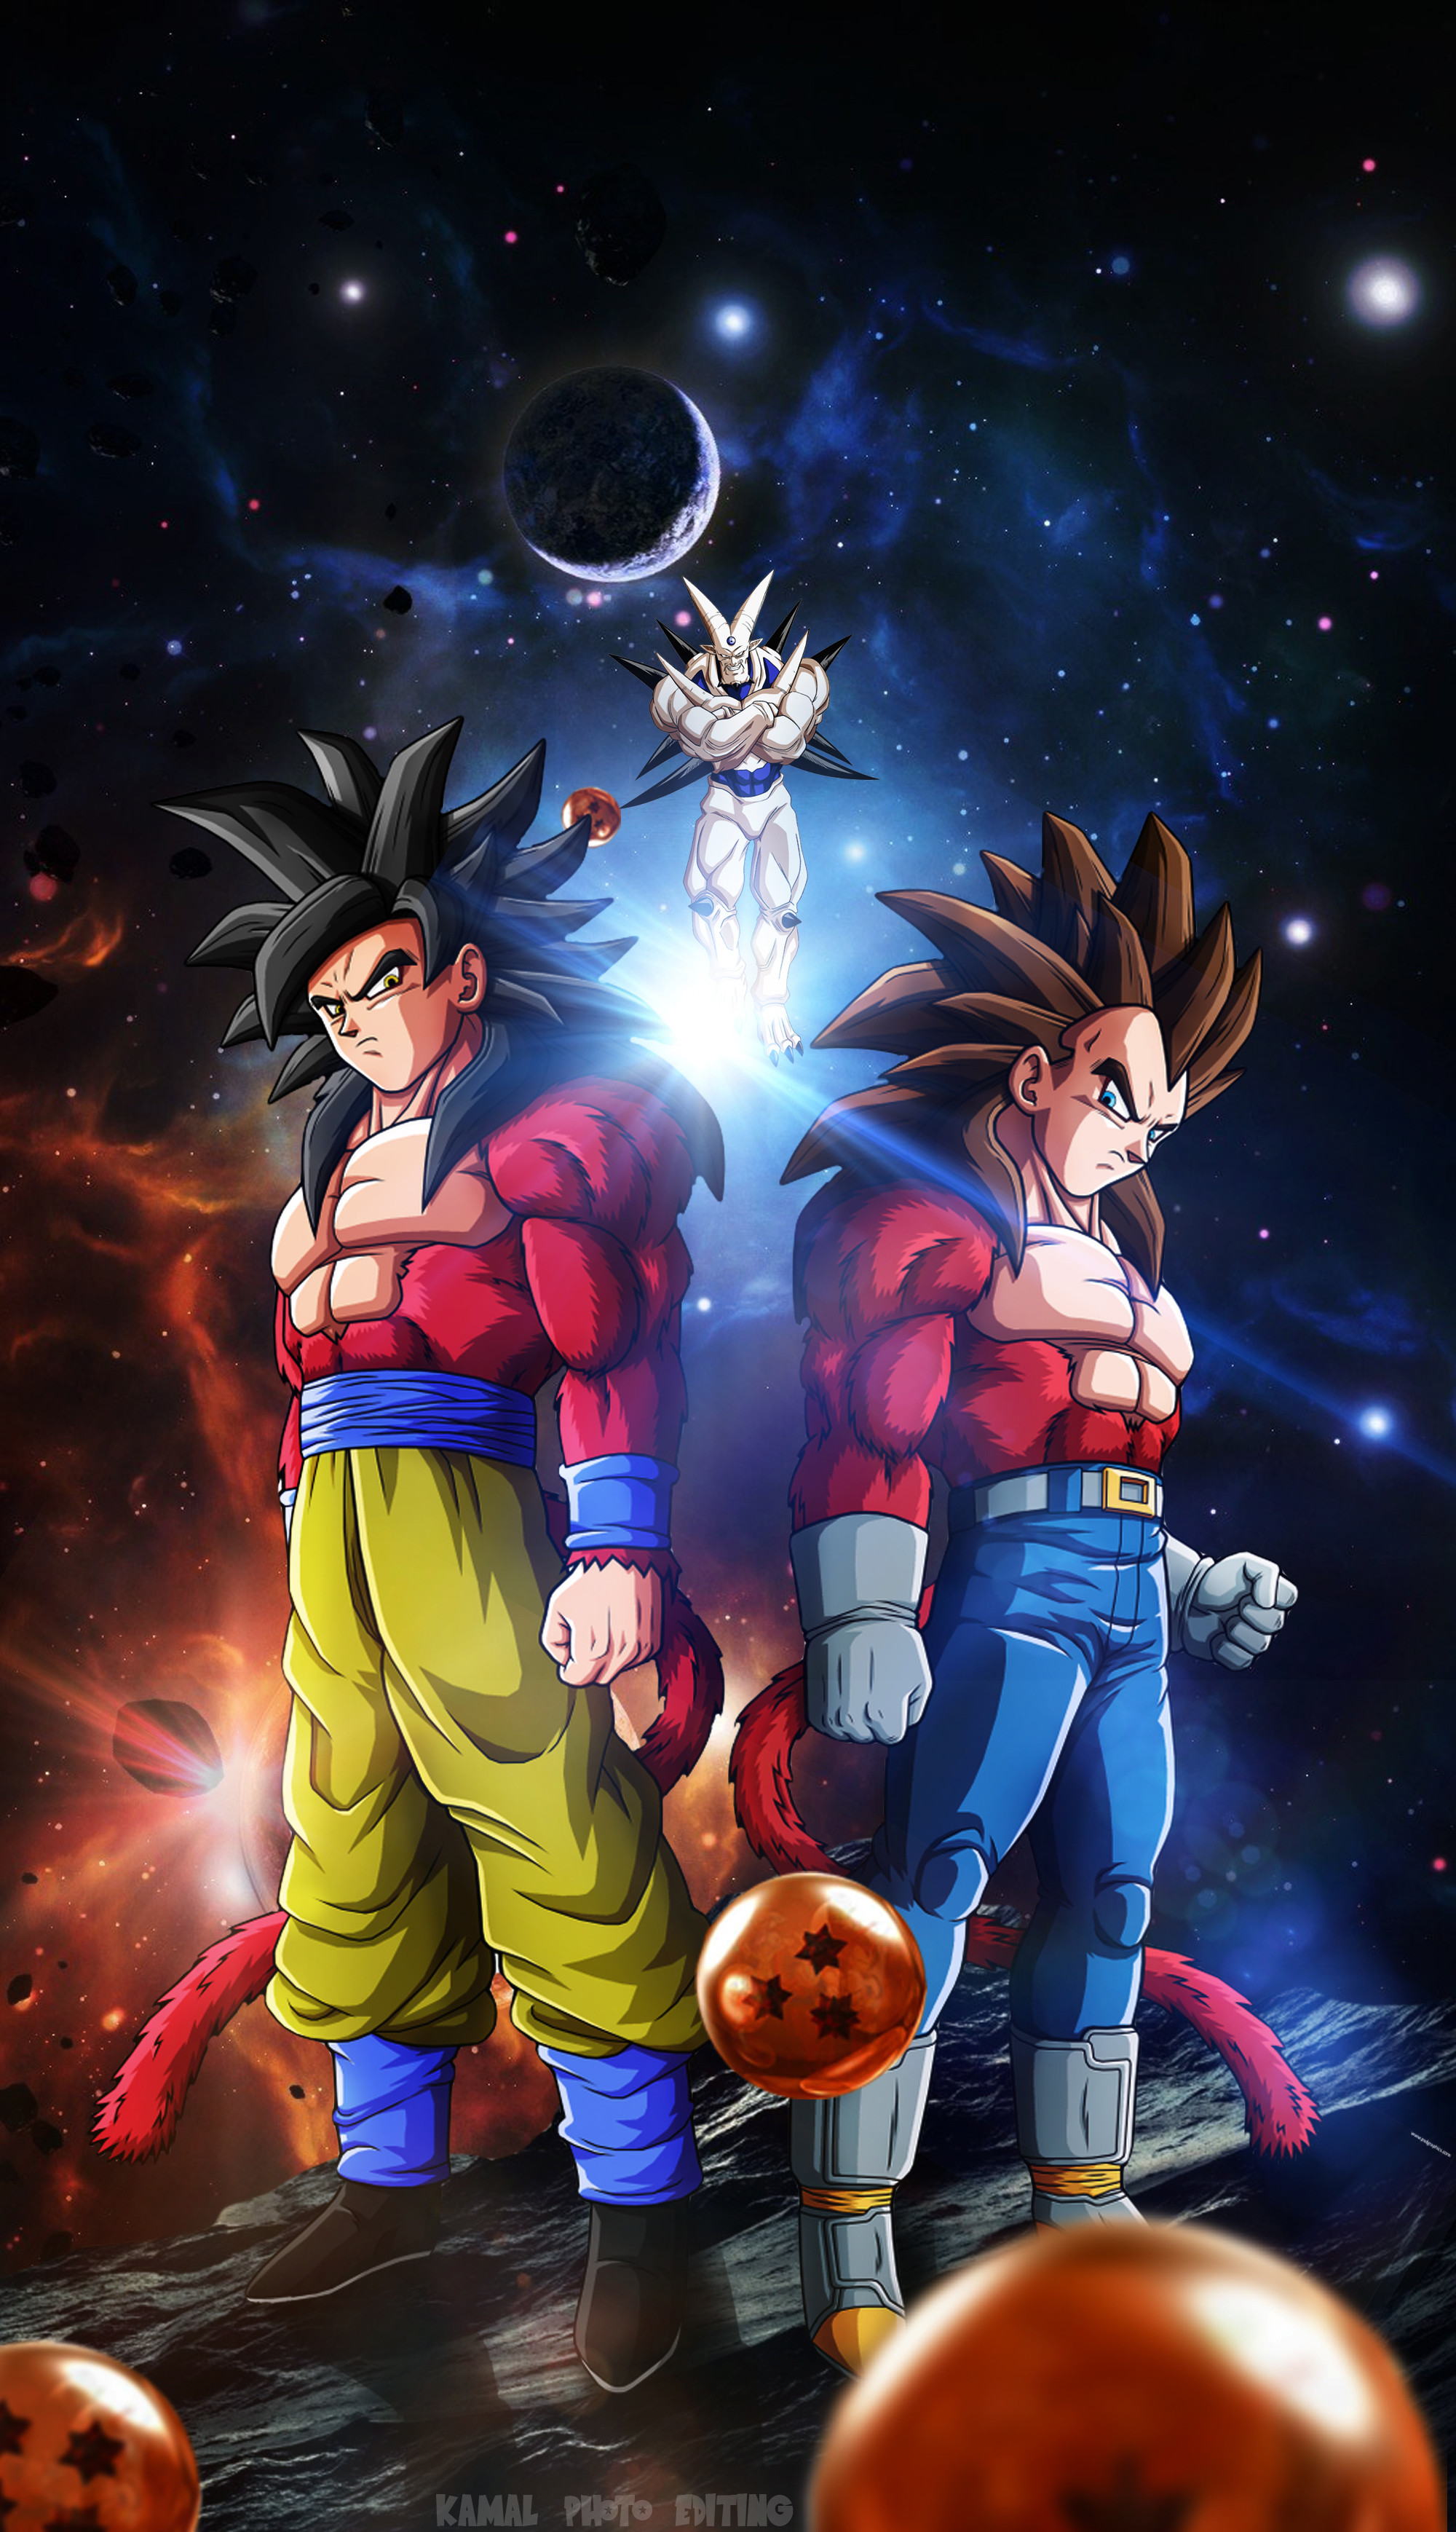 Dragon ball gt wallpapers wallpapertag - Dragon ball gt goku wallpaper ...